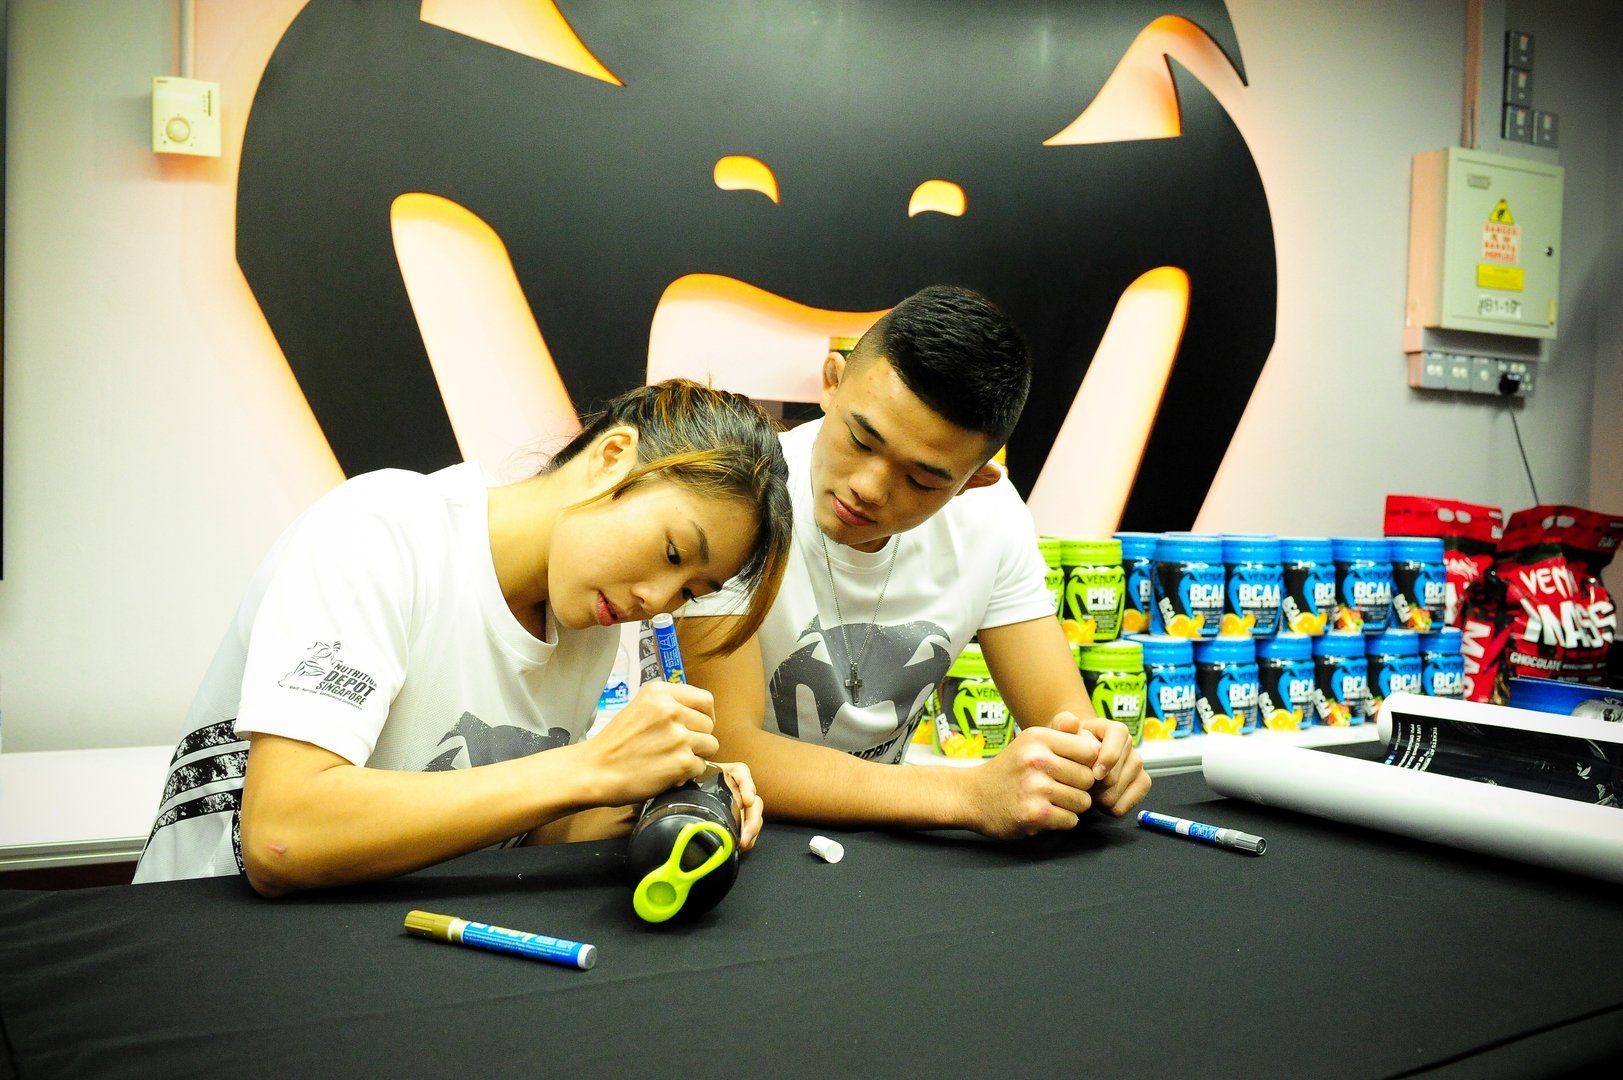 Angela and Christian sign some merchandise at a meet & greet event with their fans.